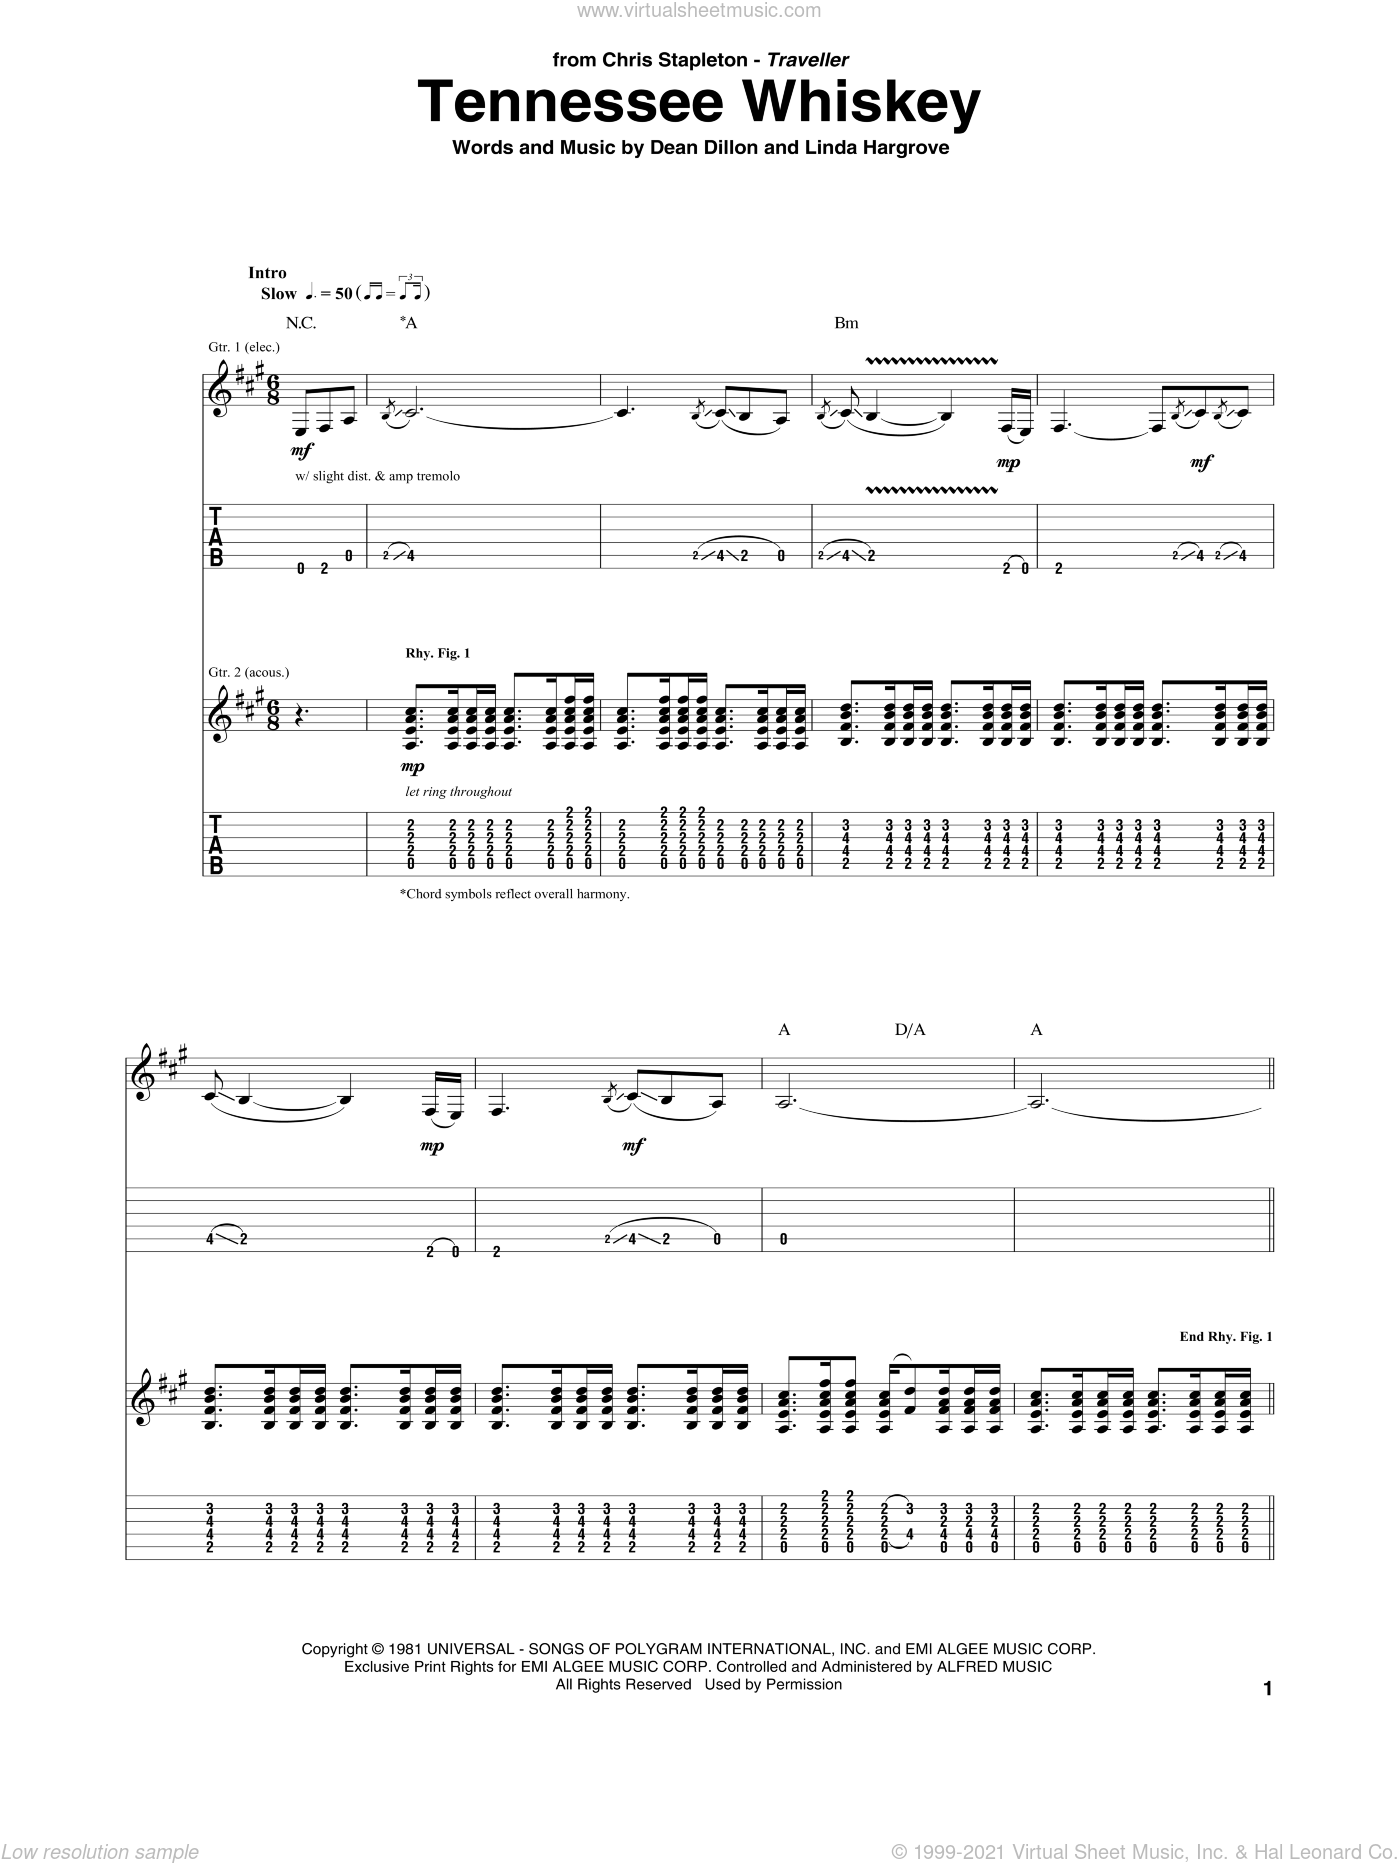 (Smooth As) Tennessee Whiskey sheet music for guitar (tablature) by Chris Stapleton, George Jones and Dean Dillon. Score Image Preview.